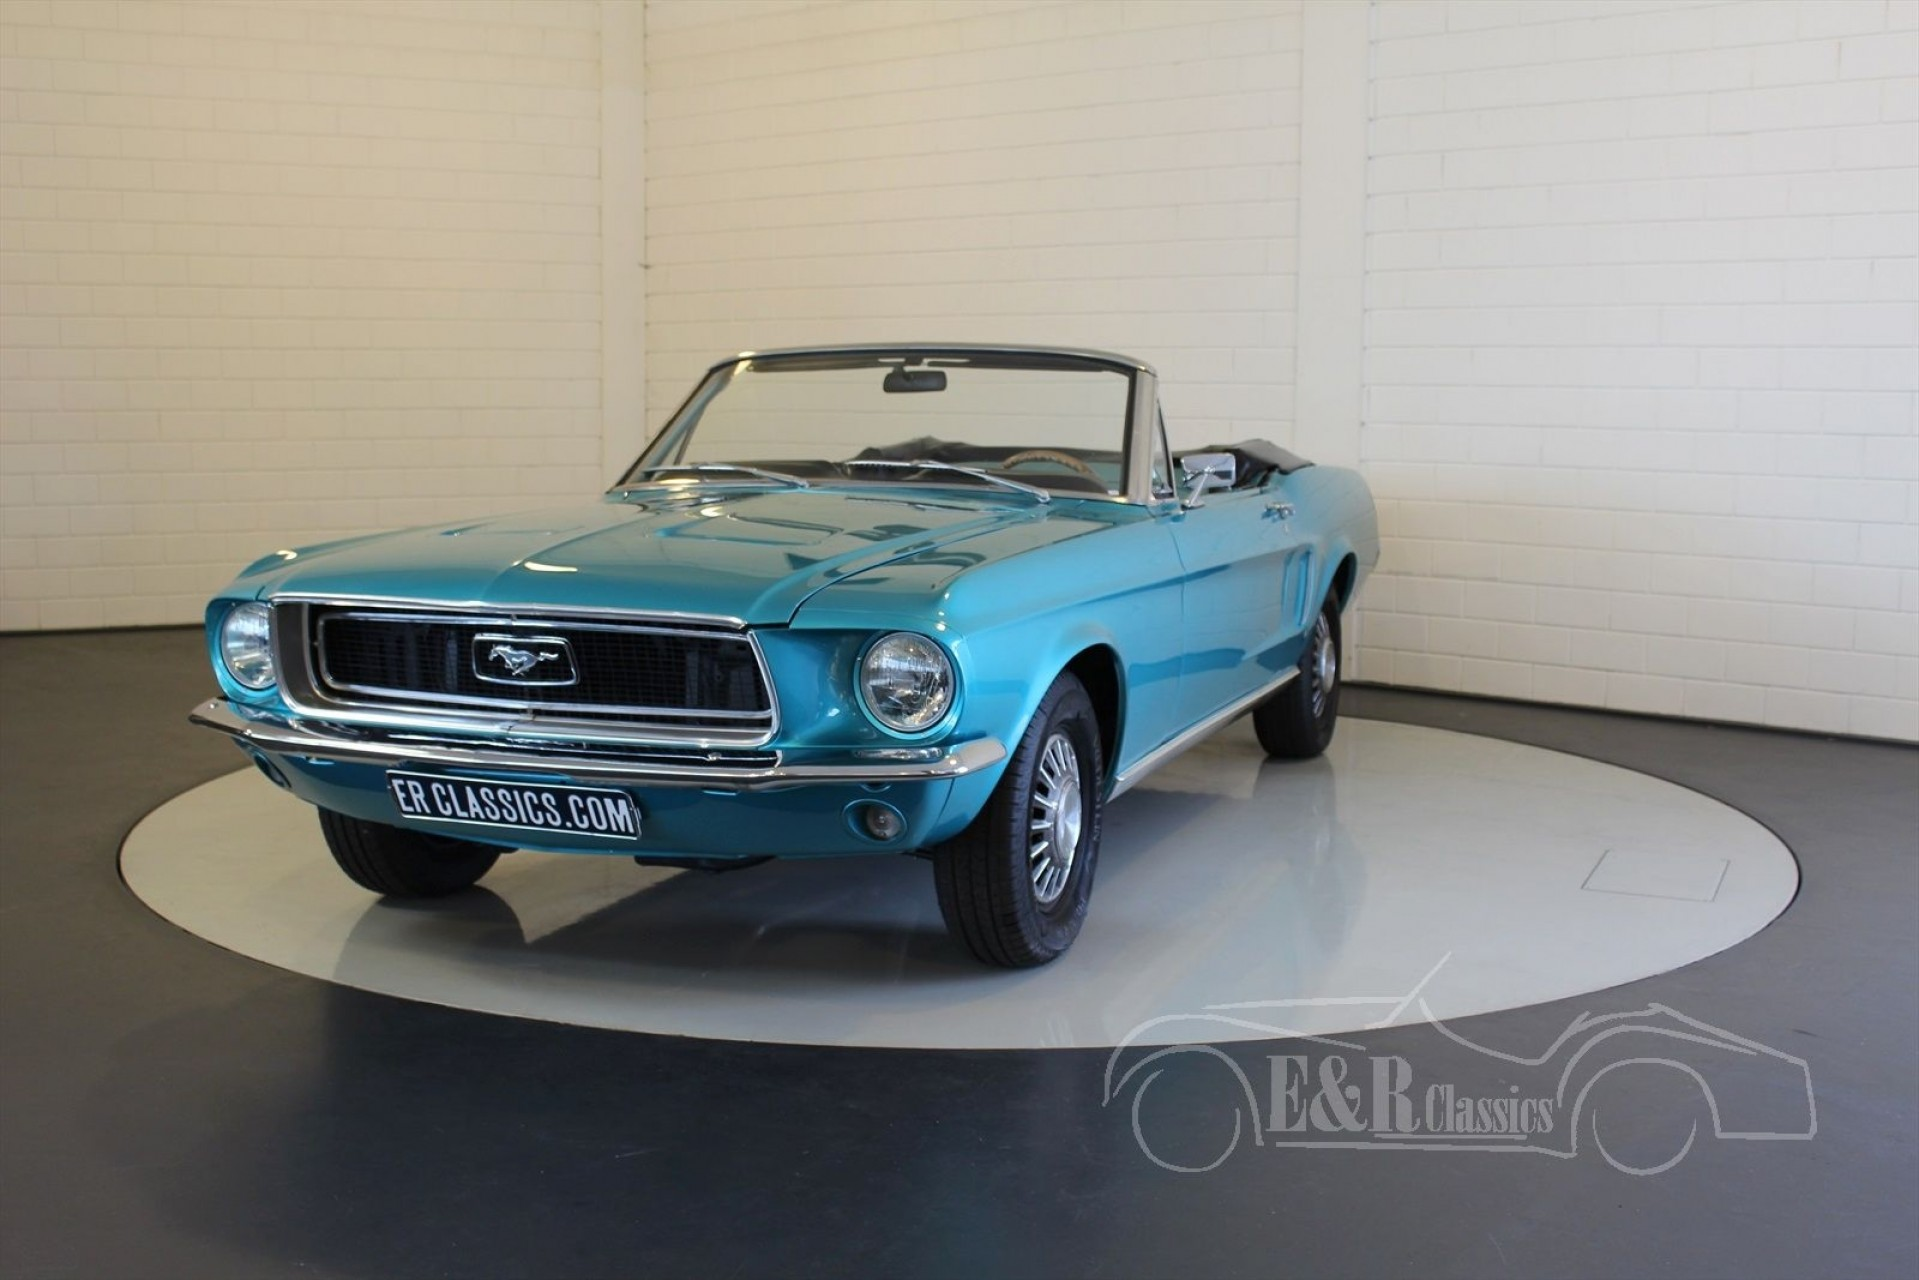 ford mustang v8 cabriolet 1968 zum kauf bei erclassics. Black Bedroom Furniture Sets. Home Design Ideas